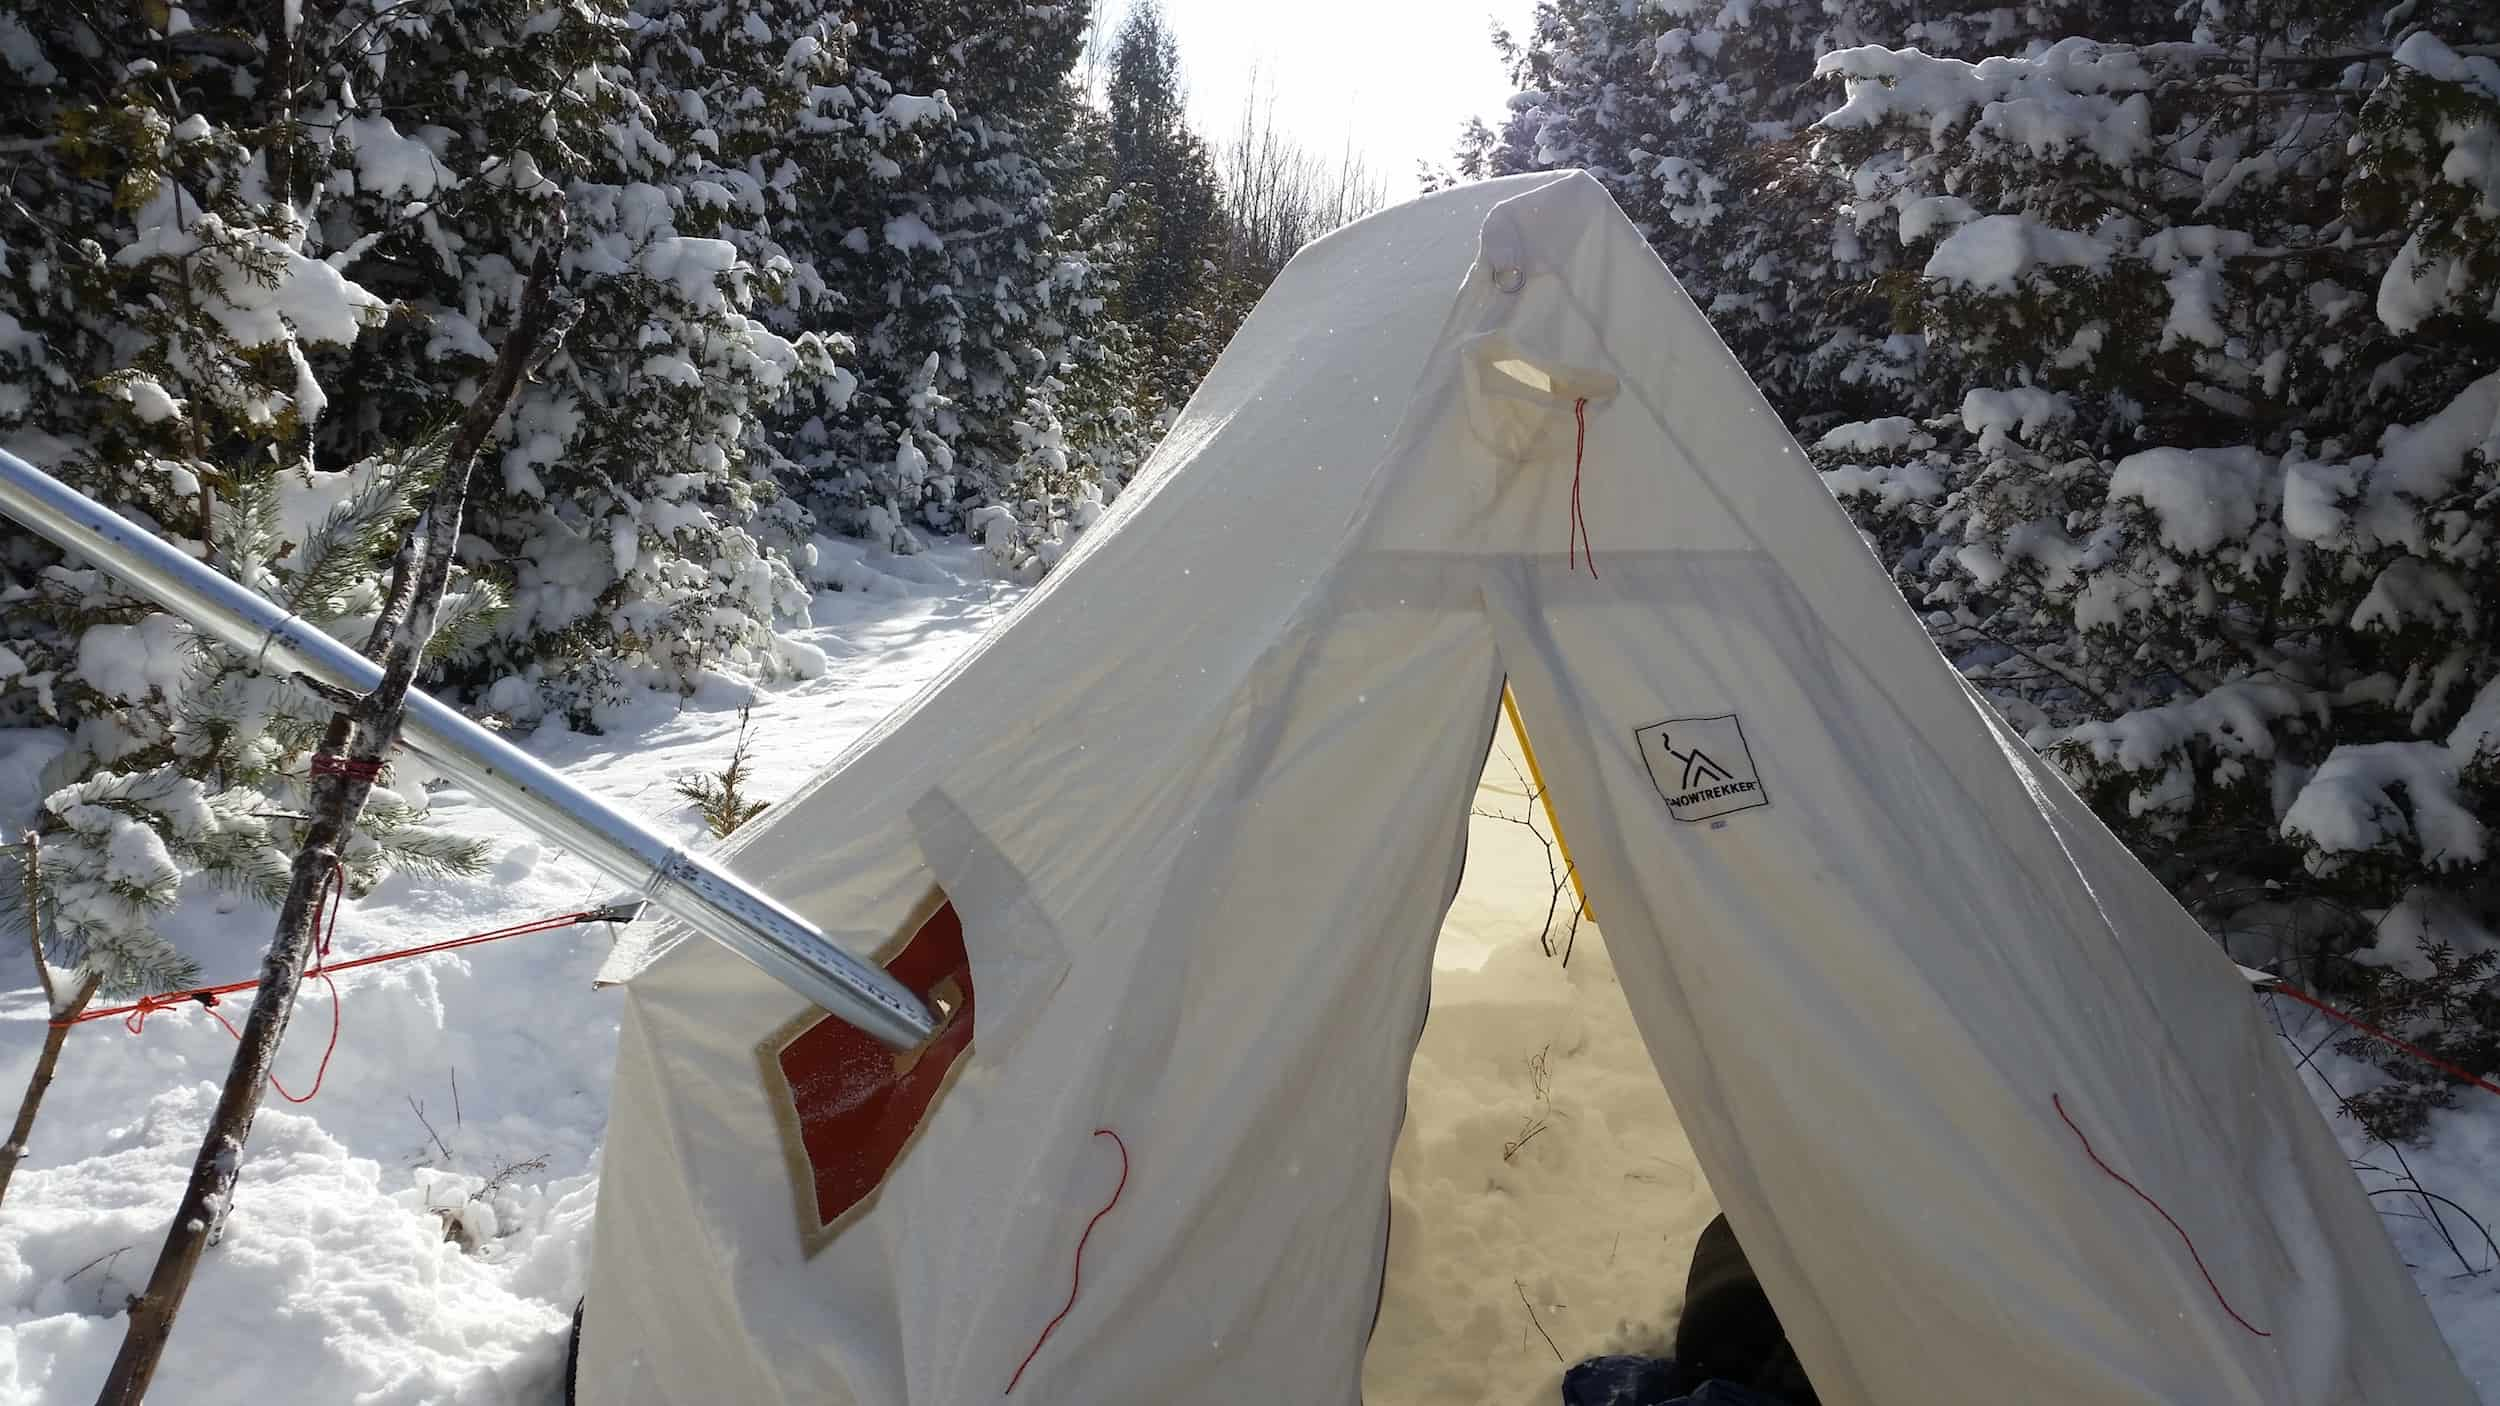 & The Happy Camper: Best Hot Tent Designs - Explore Magazine